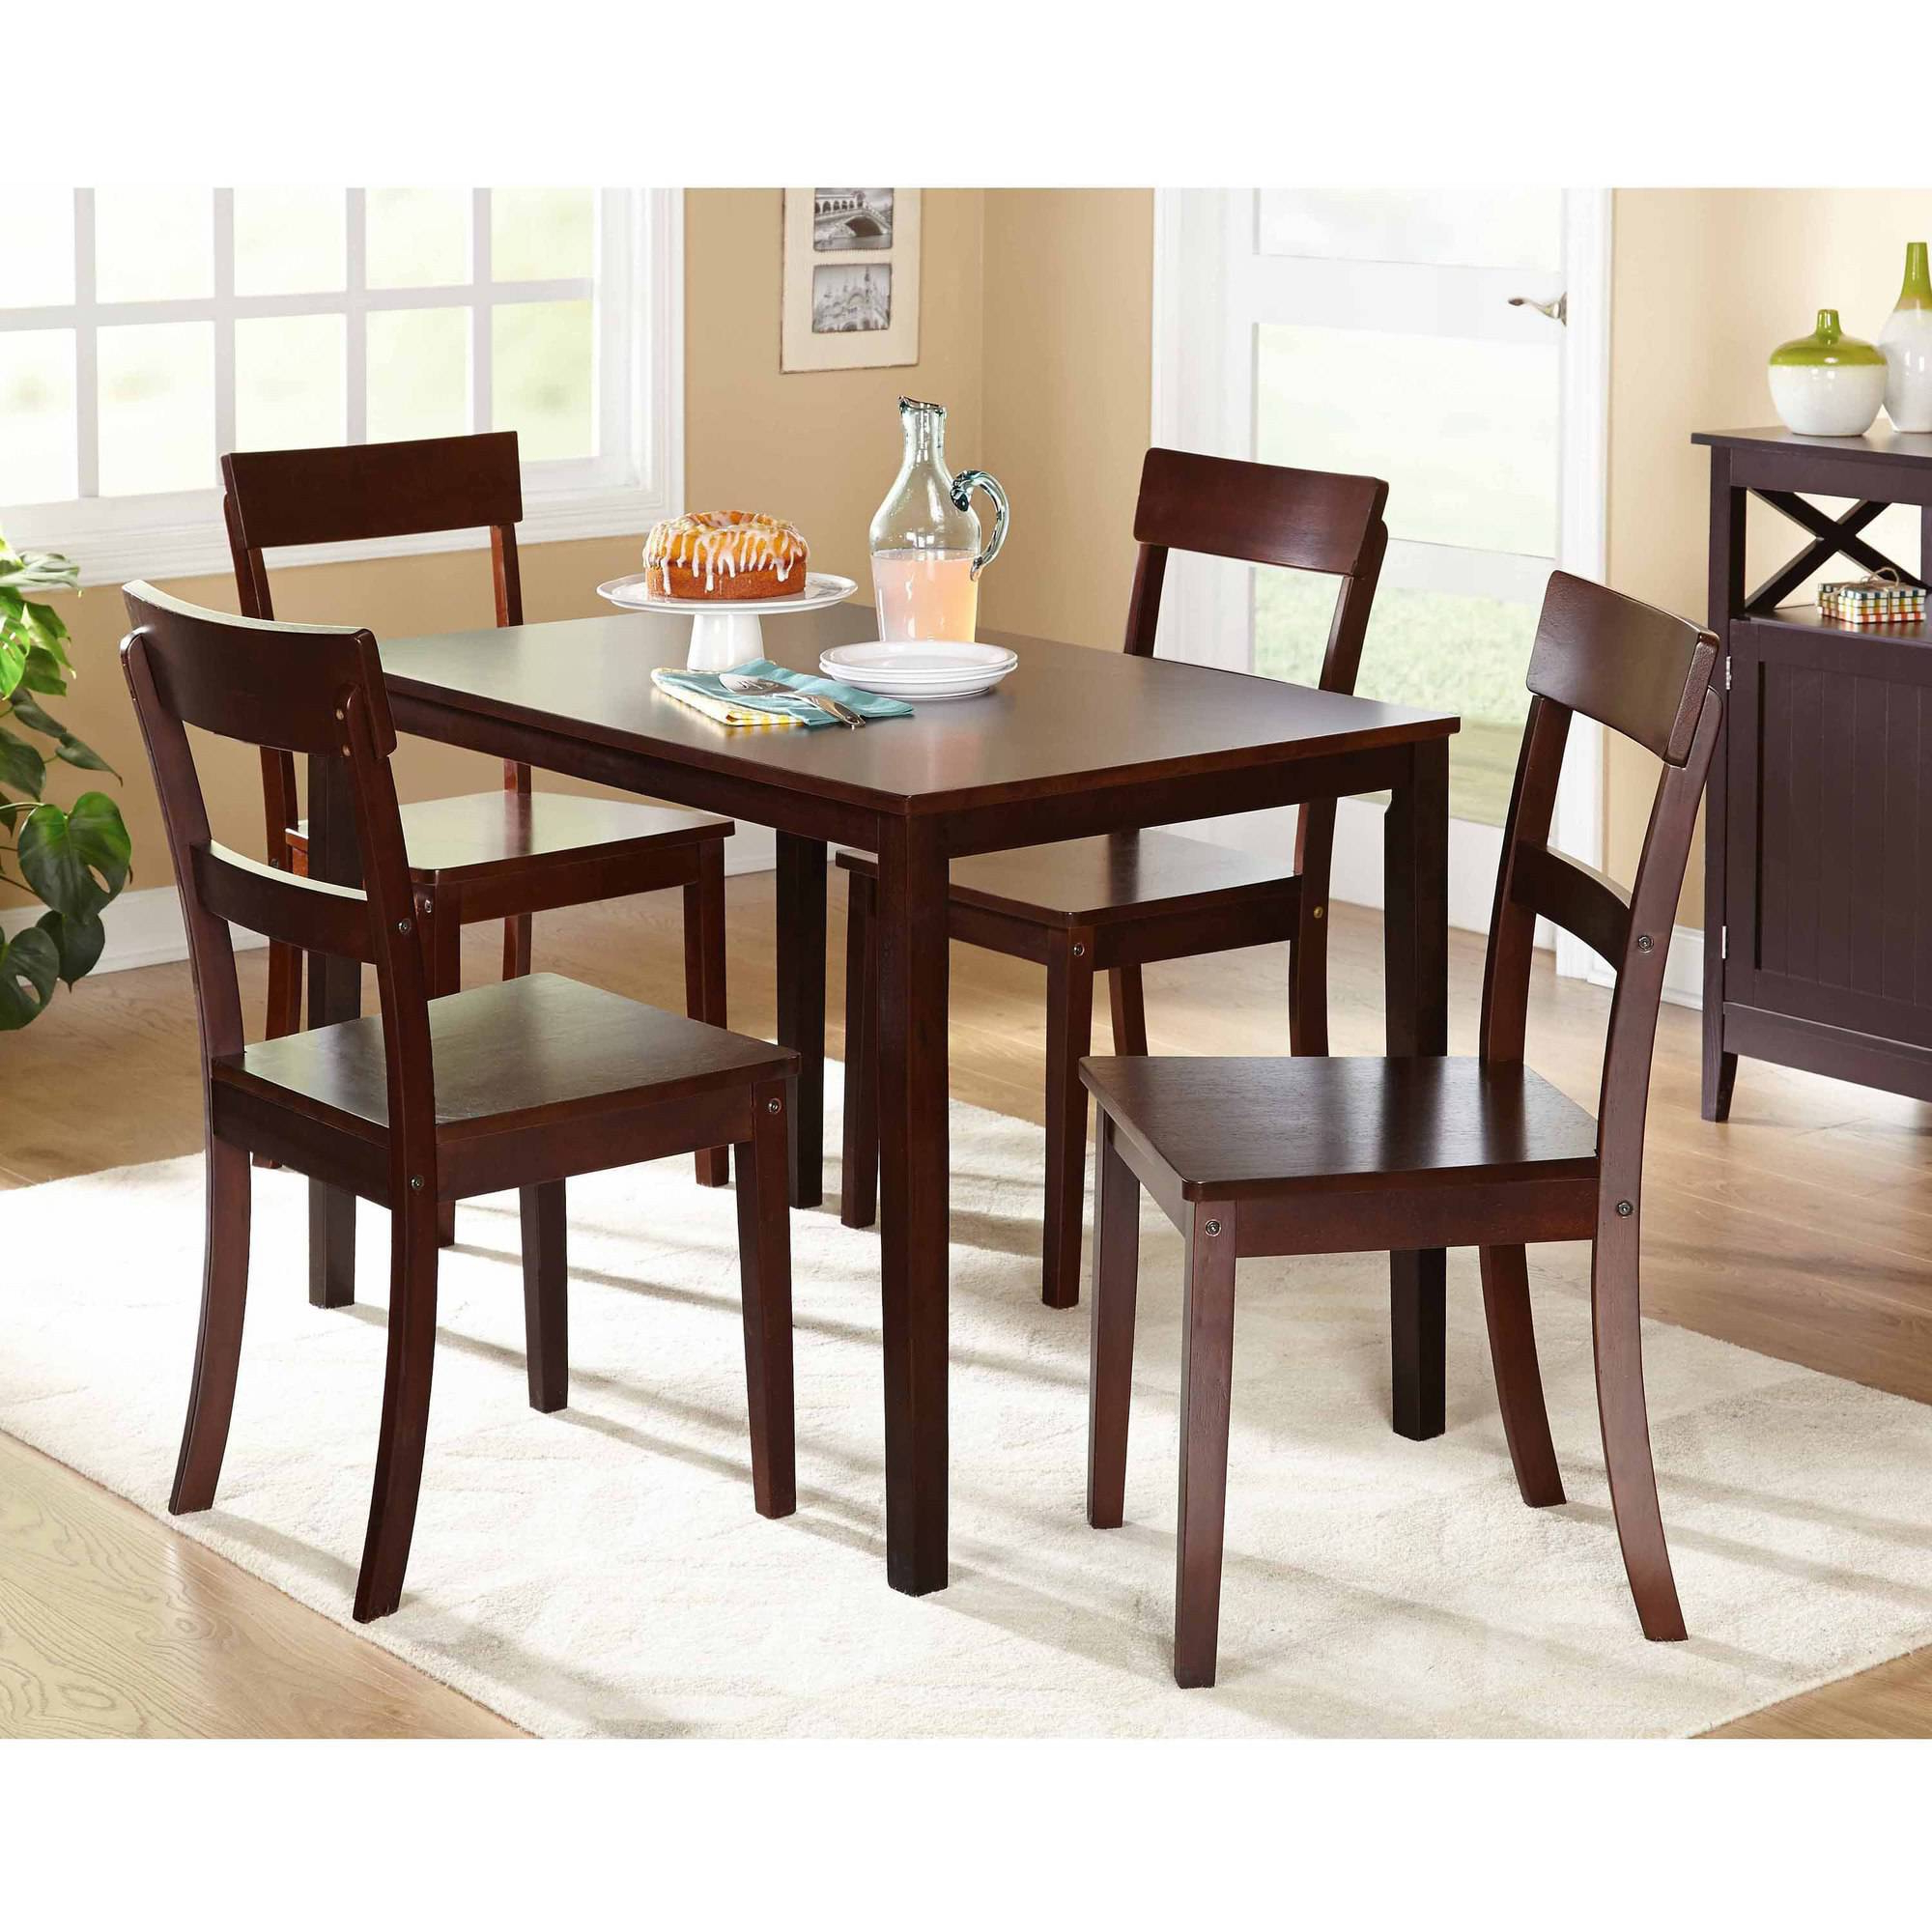 Beverly 5 Piece Dining Set, Multiple Finishes Pertaining To 2017 5 Piece Dining Sets (View 7 of 20)